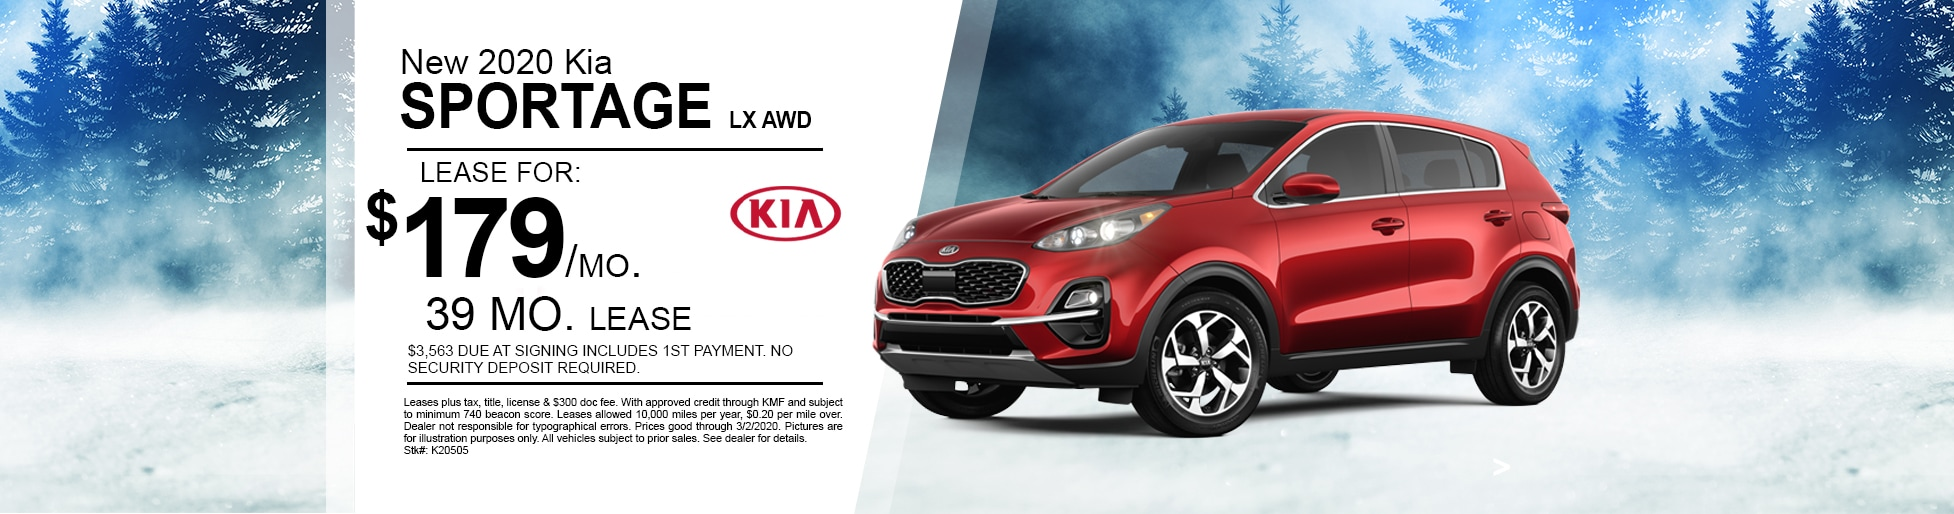 New 2020 Kia Sportage Lease Deal